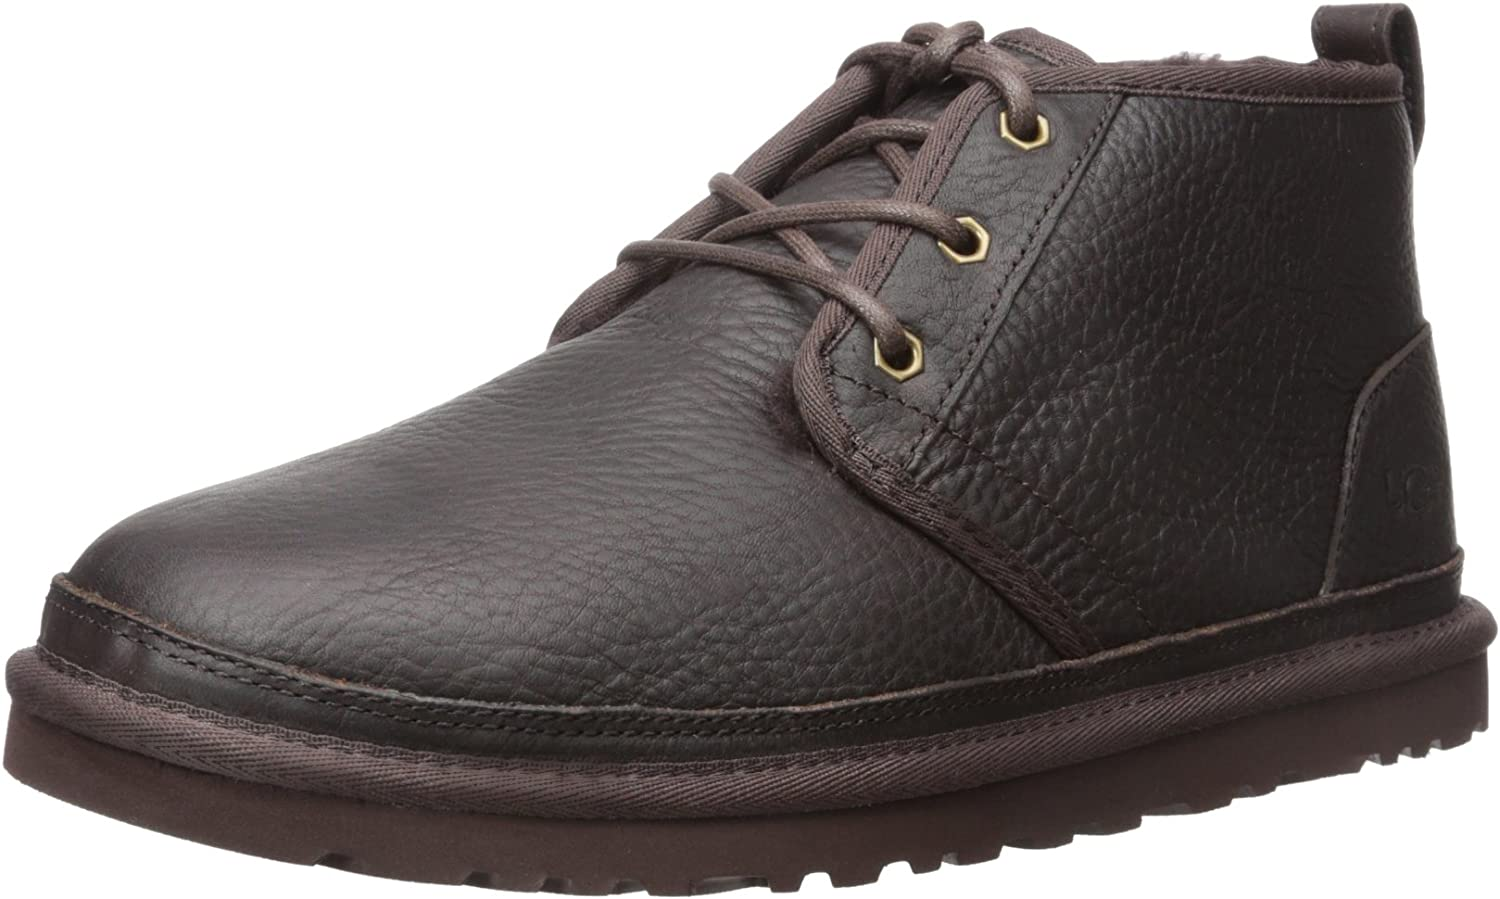 TALLA 46 EU. Ugg Men's Neumel Ankle-High Leather Boot